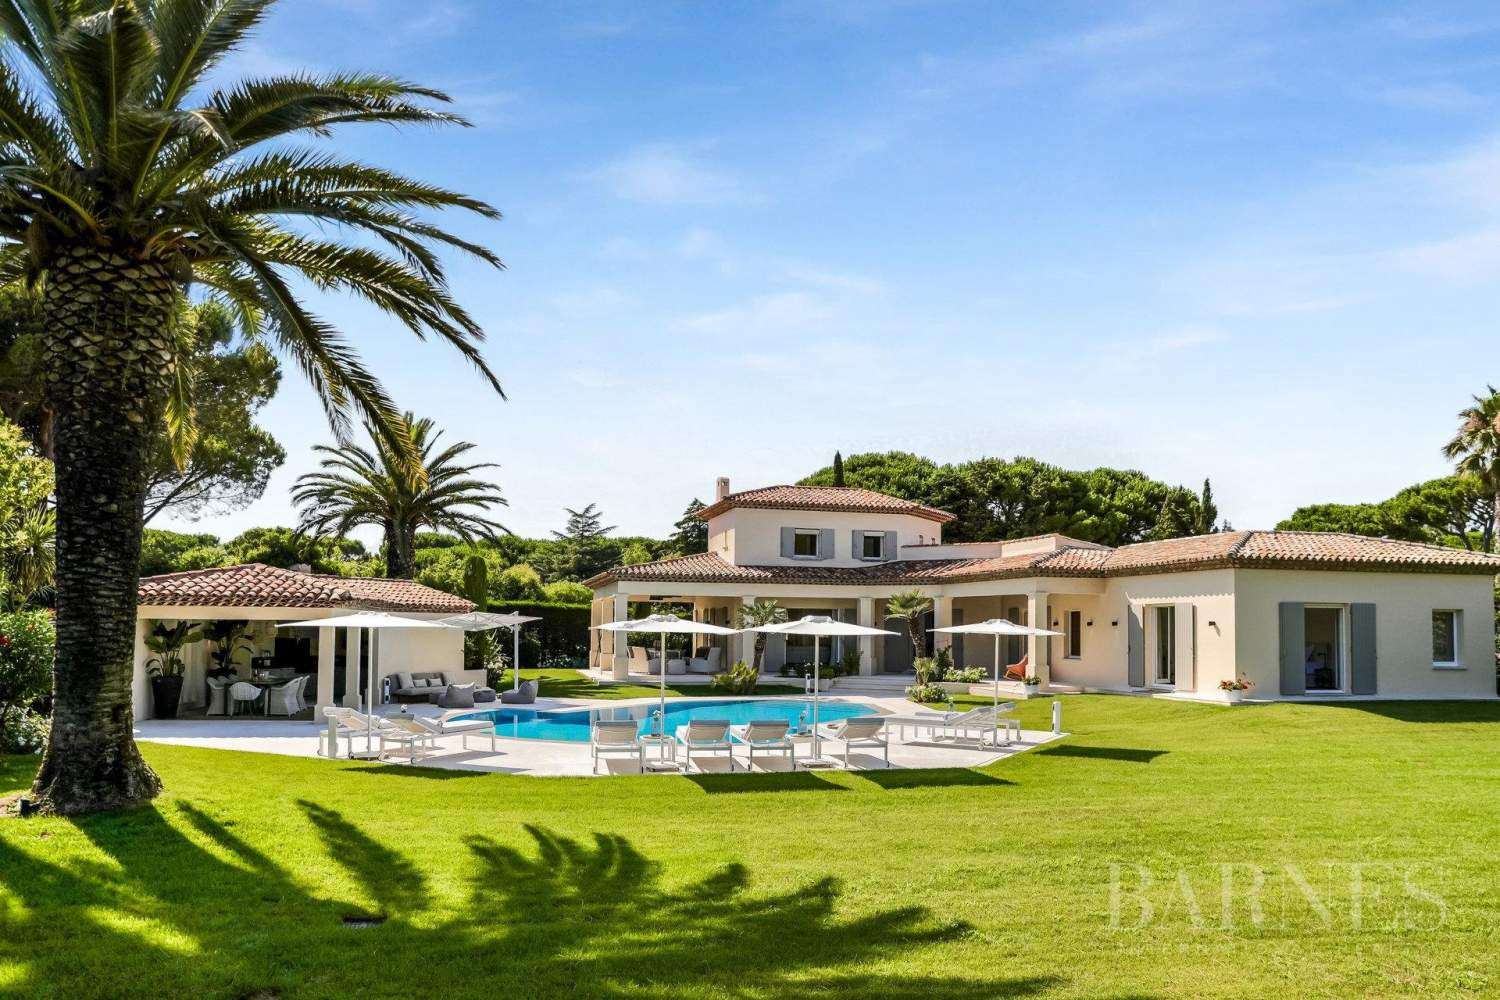 SAINT-TROPEZ - Salins aera - Magnificent villa near the beaches and the village picture 1